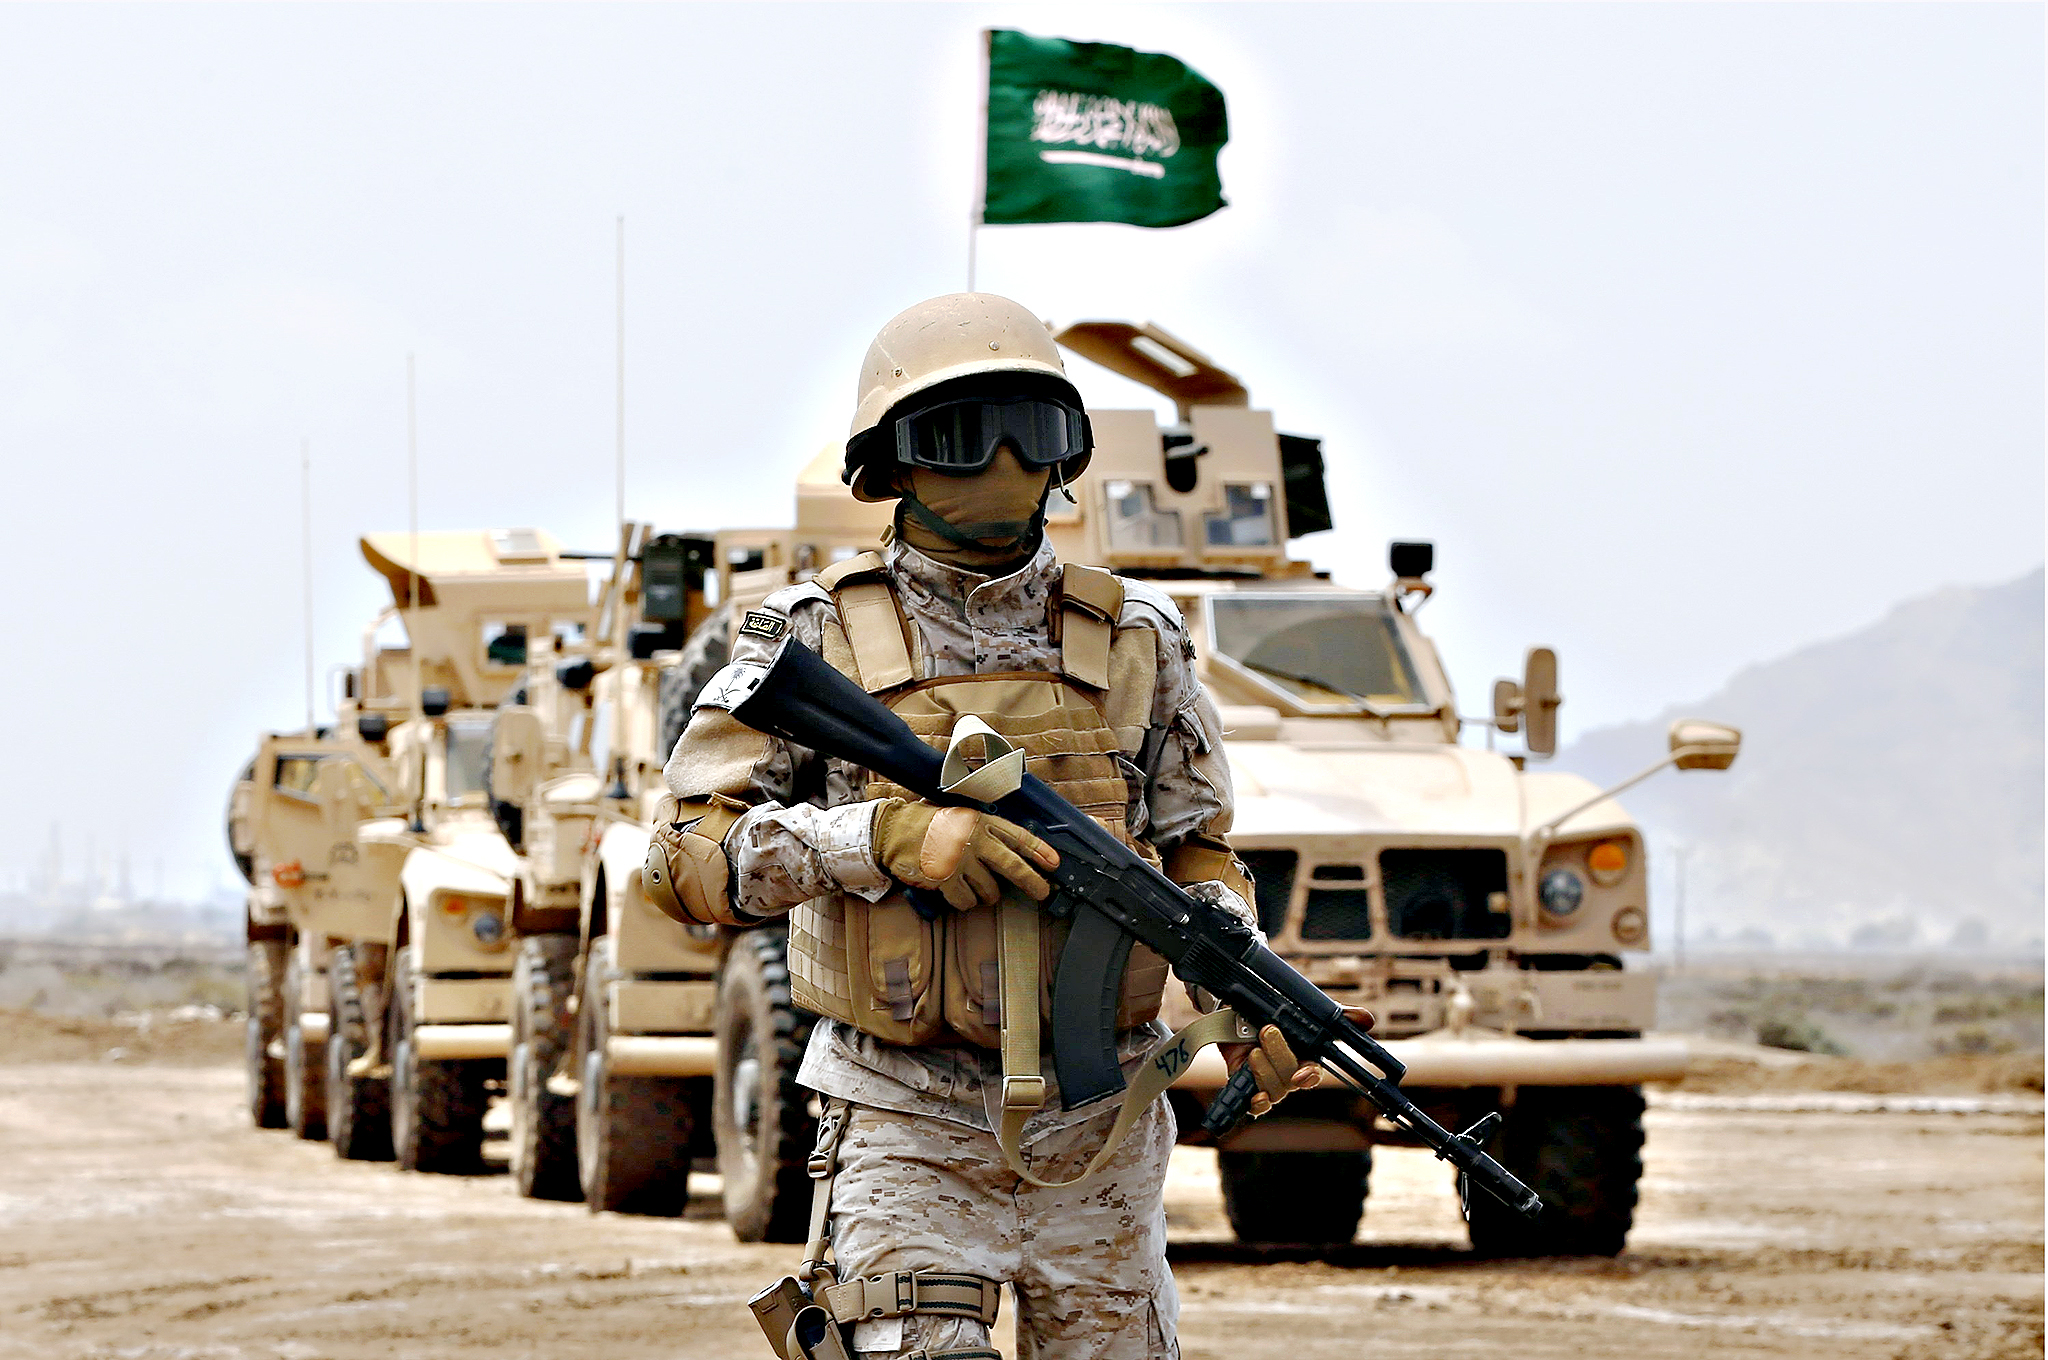 A member of the Saudi forces stands to attention during a visit by Yemeni Prime Minister Khaled Bahah at the Saudi-led coalition military base in Yemen's southern embattled city of Aden on Monday. Since Bahah's return from exile on September 16, 2015, his government is conducting the country's business from Aden, and is aiming to reinforce fighters supporting Yemeni President Abedrabbo Mansour Hadi, battling Shiite Huthi rebels in the central region